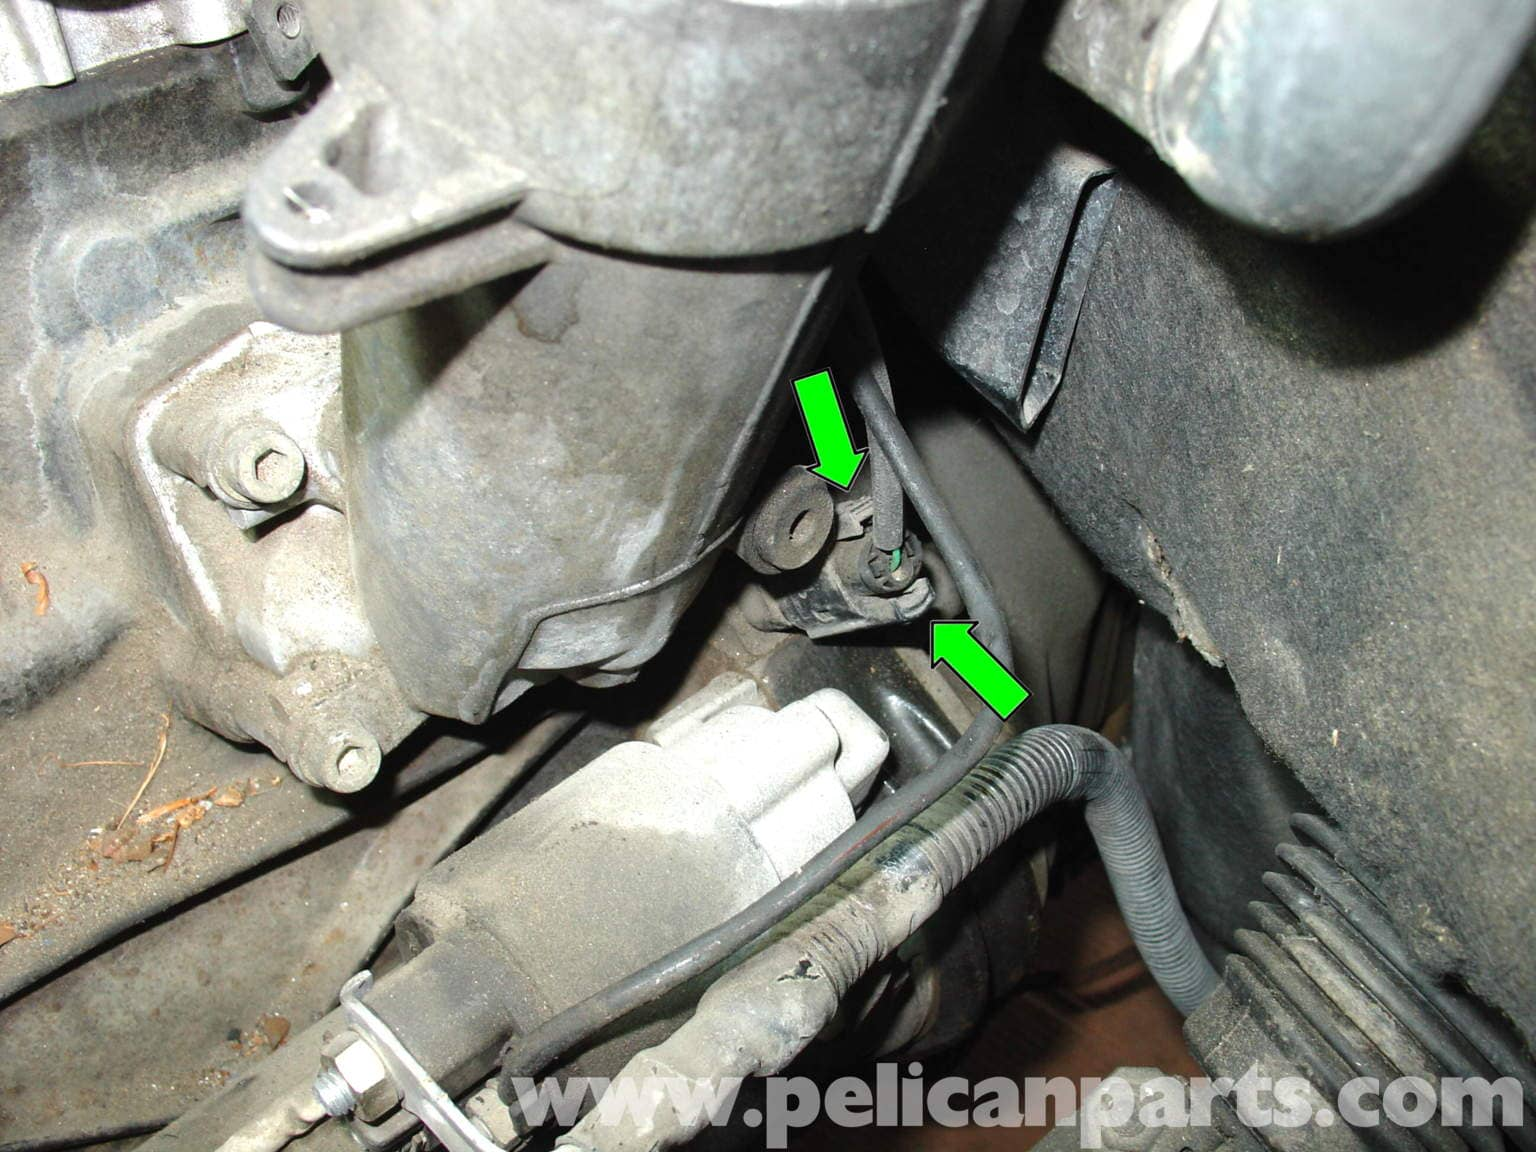 07 ENGINE Crankshaft Position Sensor Replacement on saab 900 fan switch